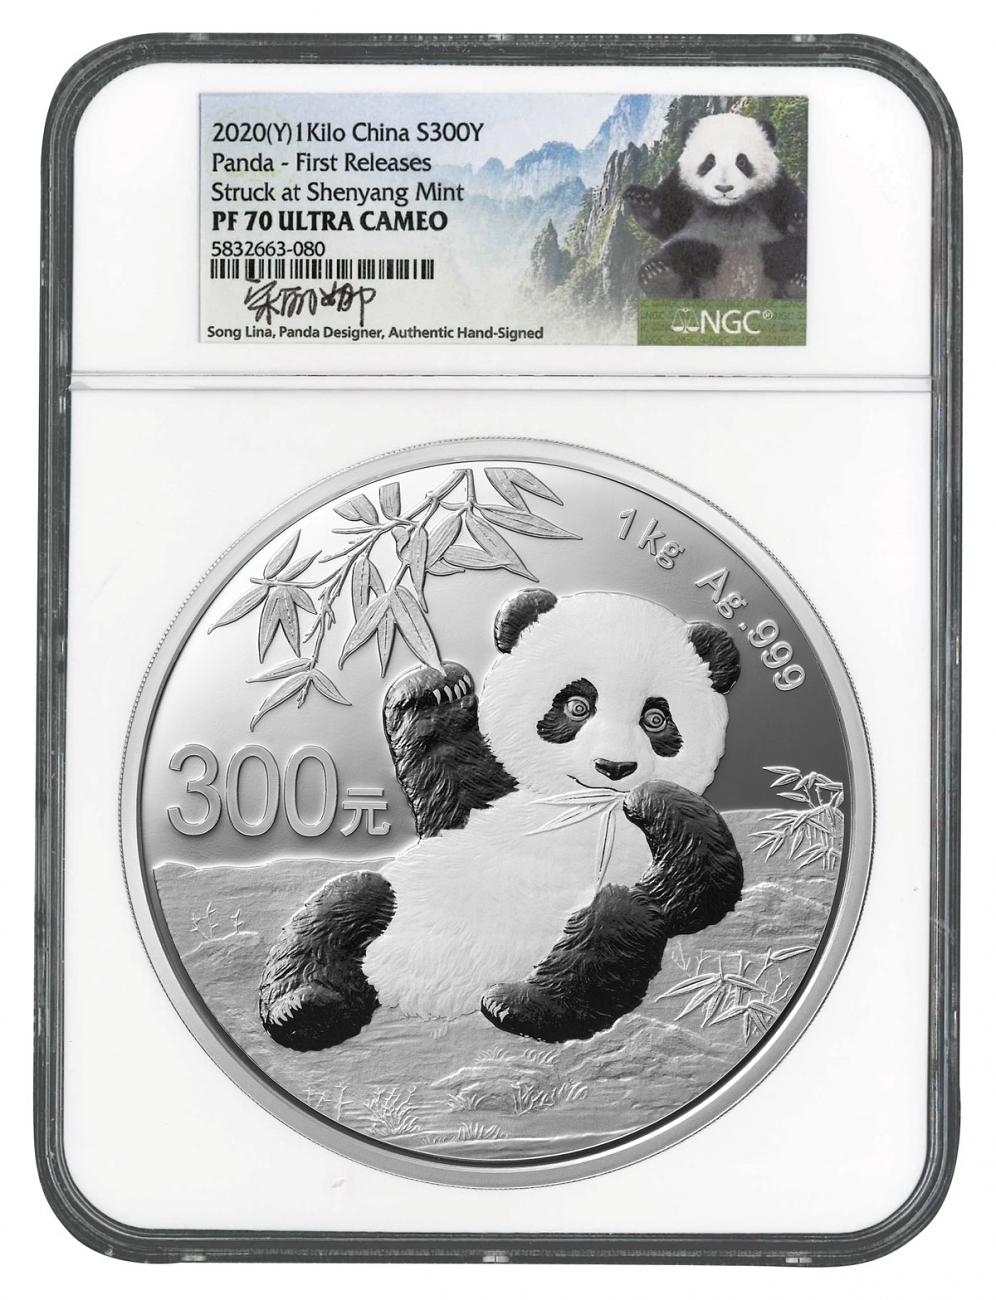 2020 China 1 Kilo Silver Panda Proof ¥300 Coin Scarce and Unique Coin Division NGC PF70 UC FR Song Lina Signed Label